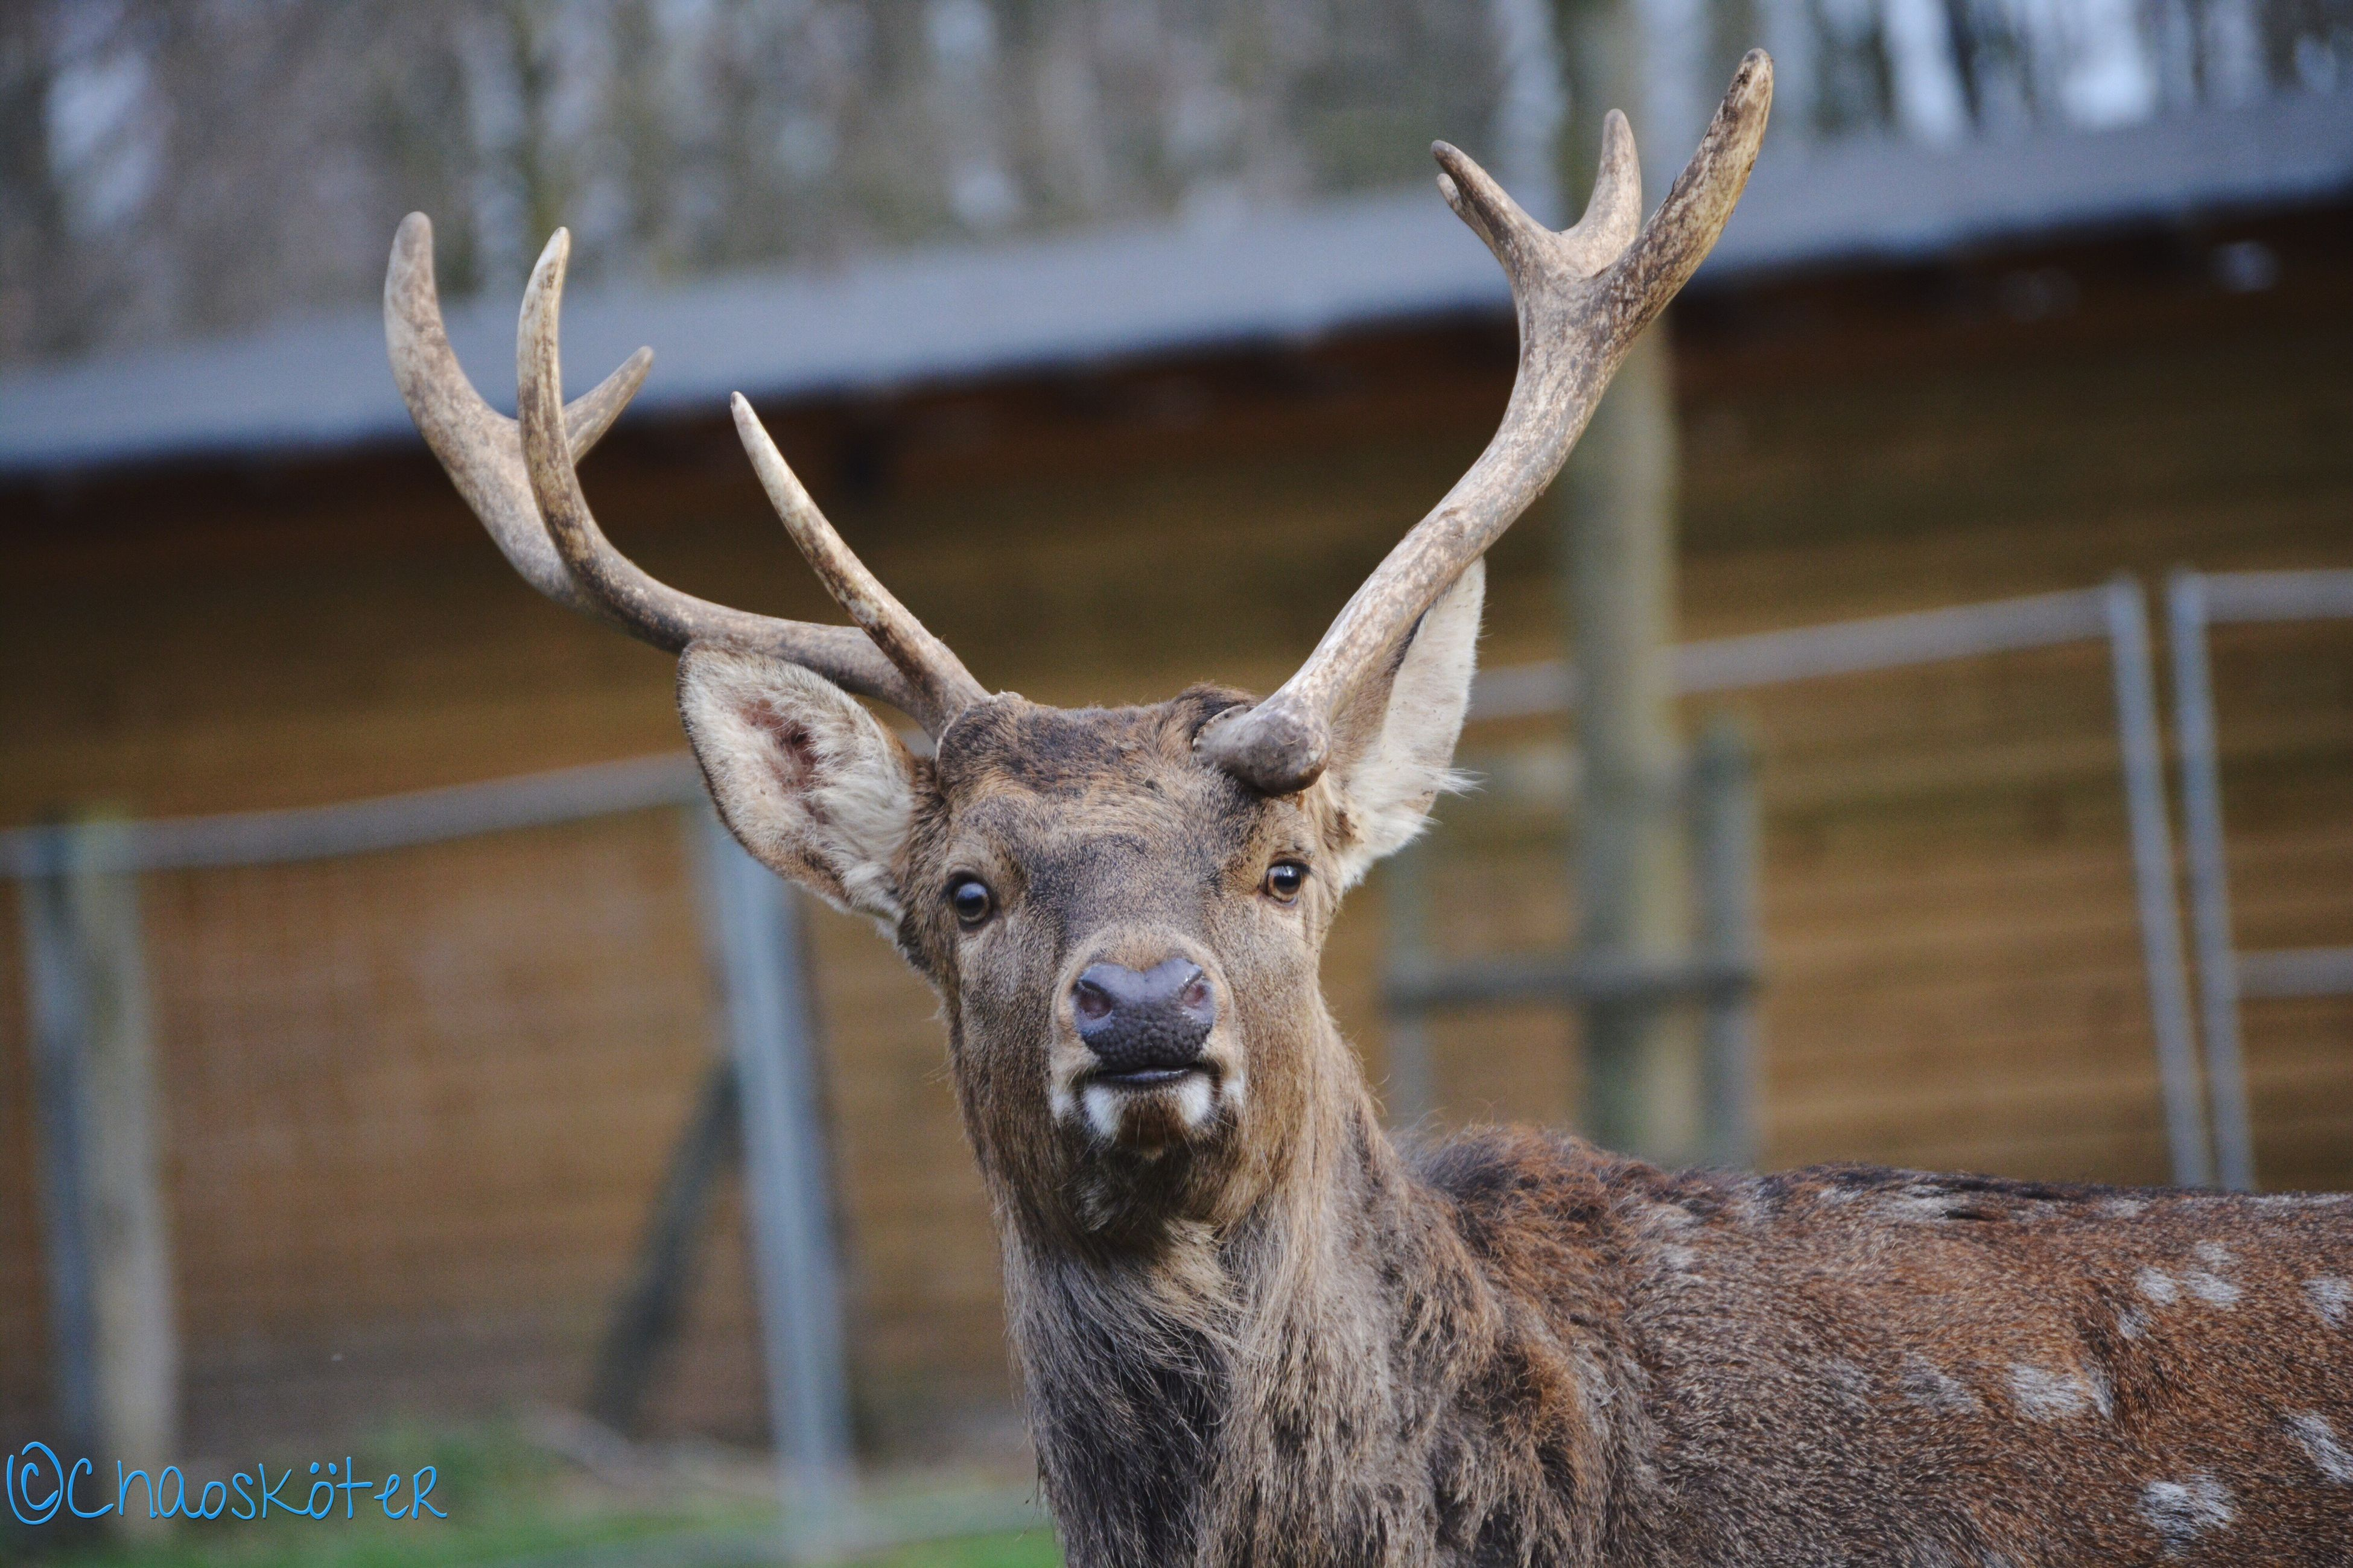 animal themes, one animal, mammal, animals in the wild, wildlife, focus on foreground, deer, horned, herbivorous, animal head, looking at camera, close-up, livestock, portrait, domestic animals, day, animal body part, zoology, no people, outdoors